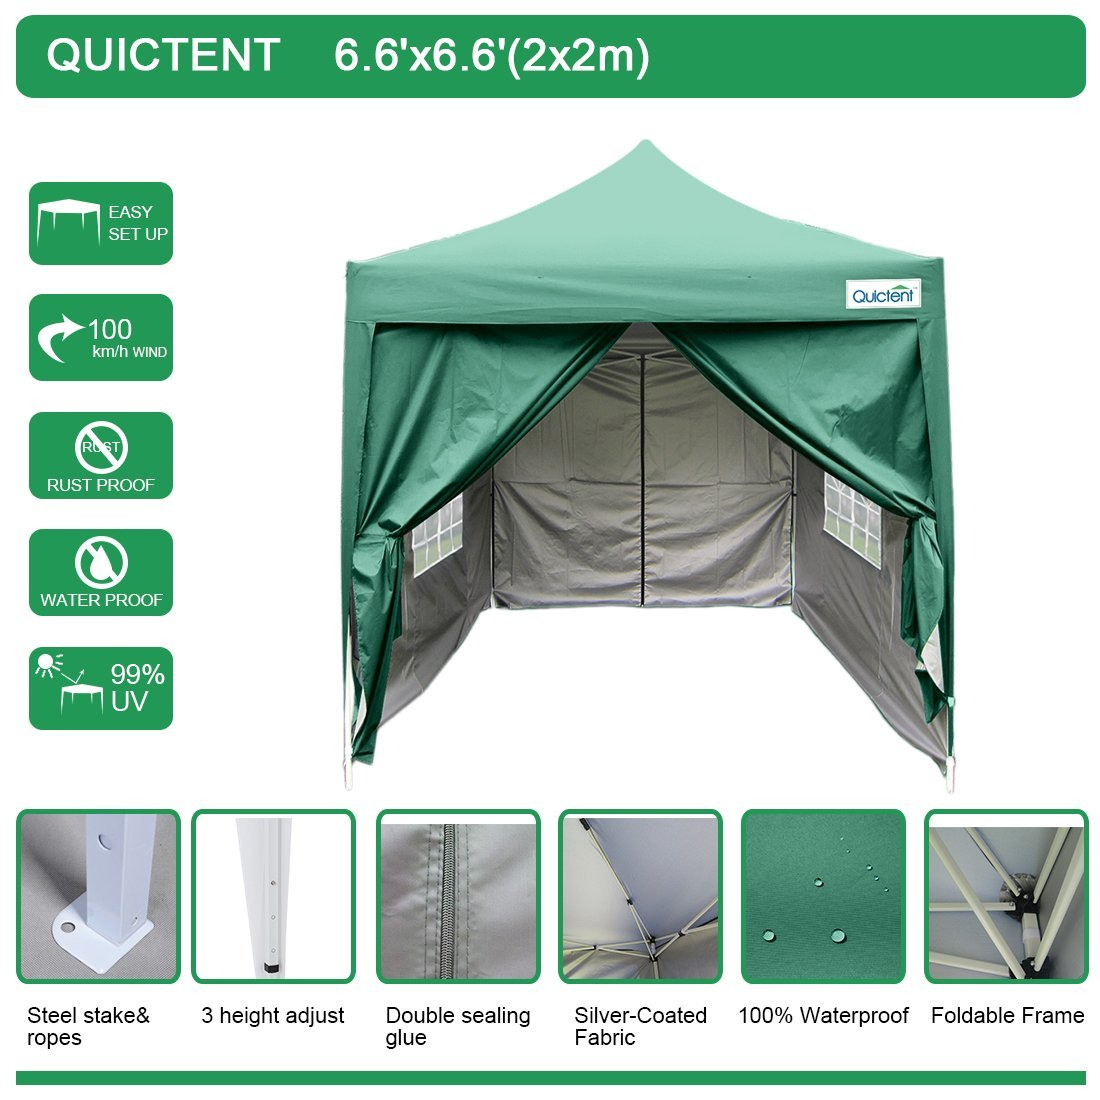 Quictent Silvox 6.6' x 6.6' EZ Pop Up Canopy Portable Waterproof Gazebo Pyramid Roof Beige